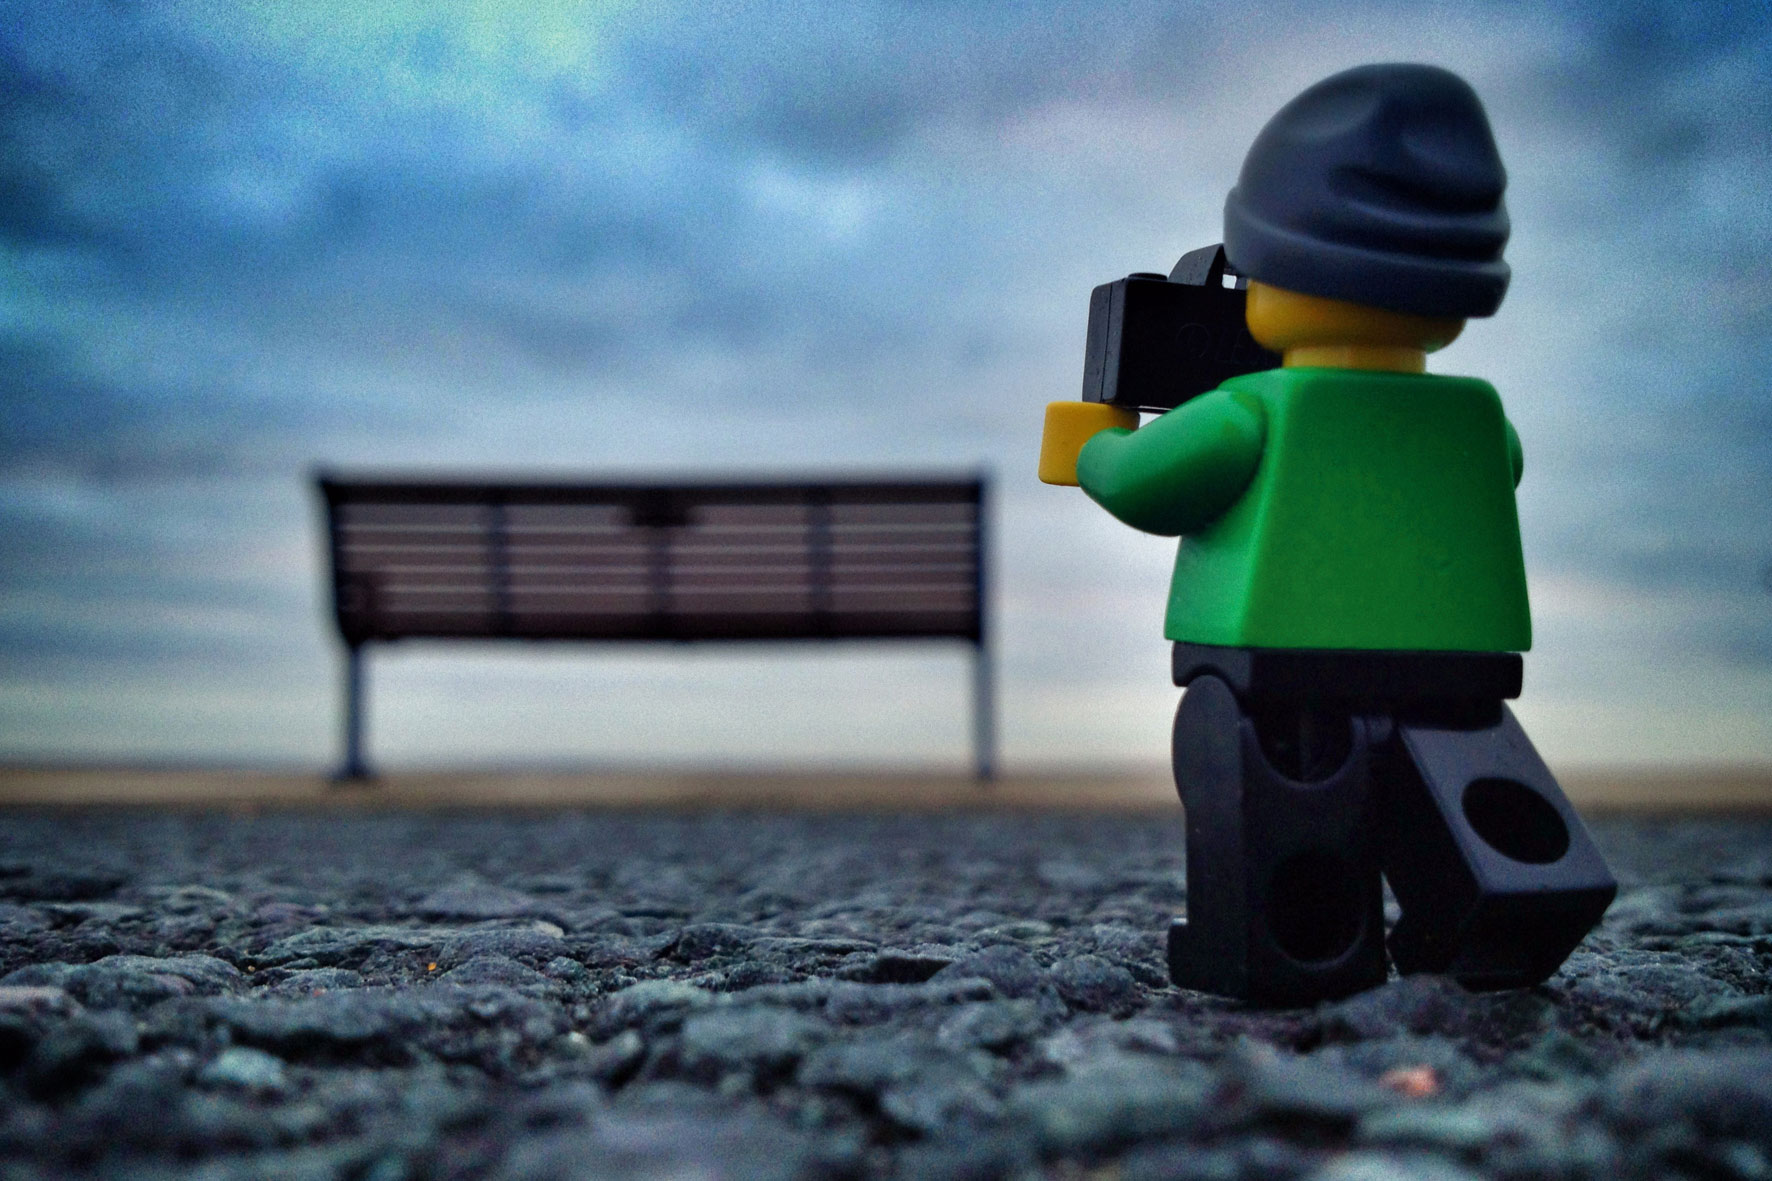 Legography – A View of the City